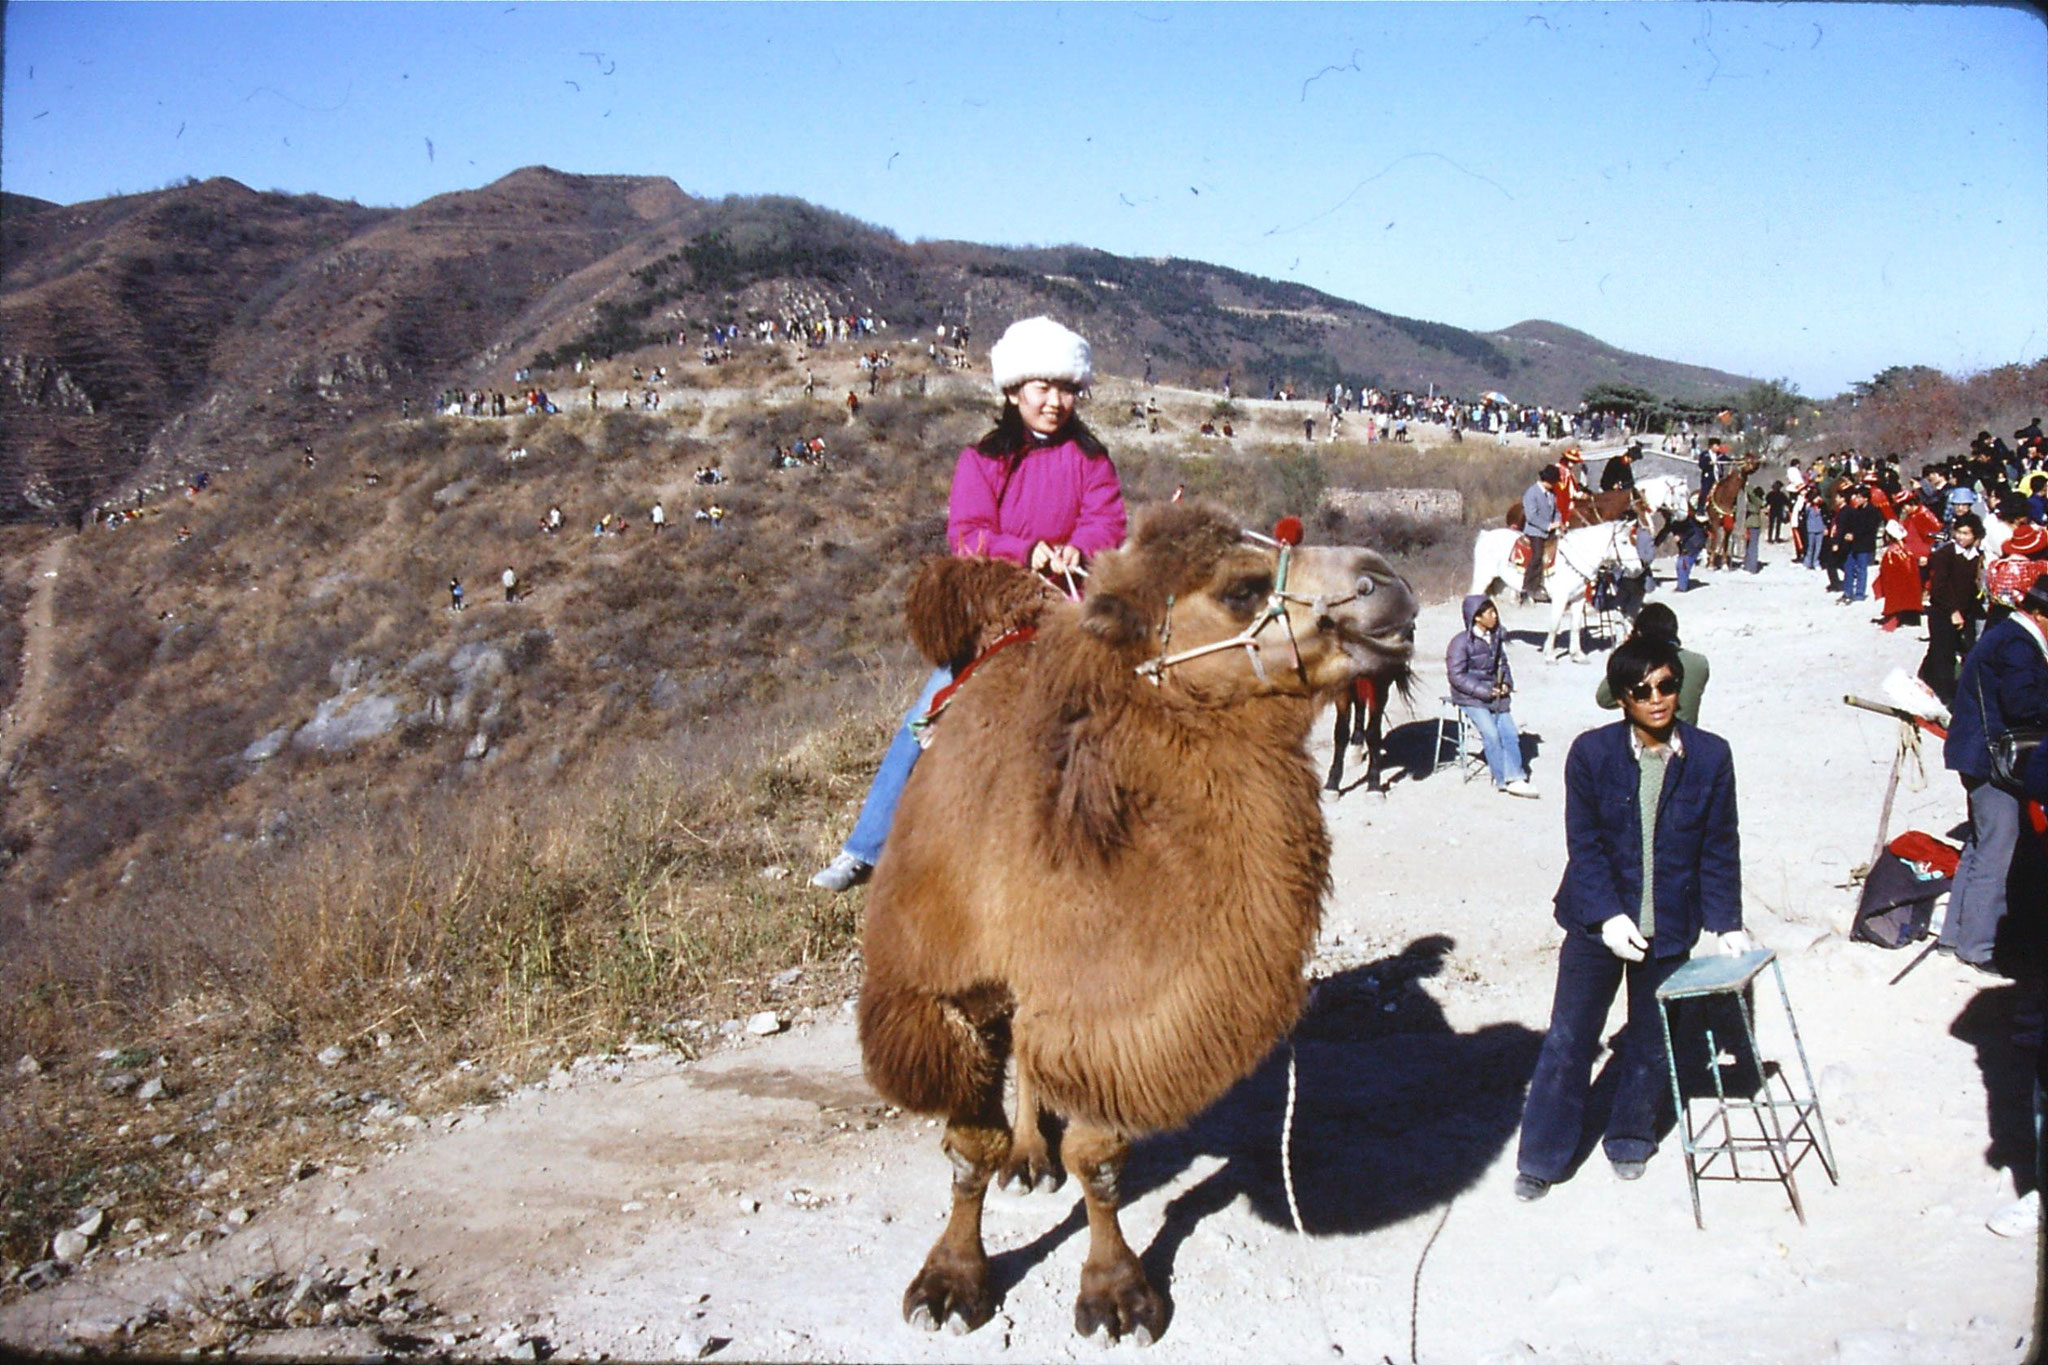 6/11/1988: 30: outing to Xiangshan